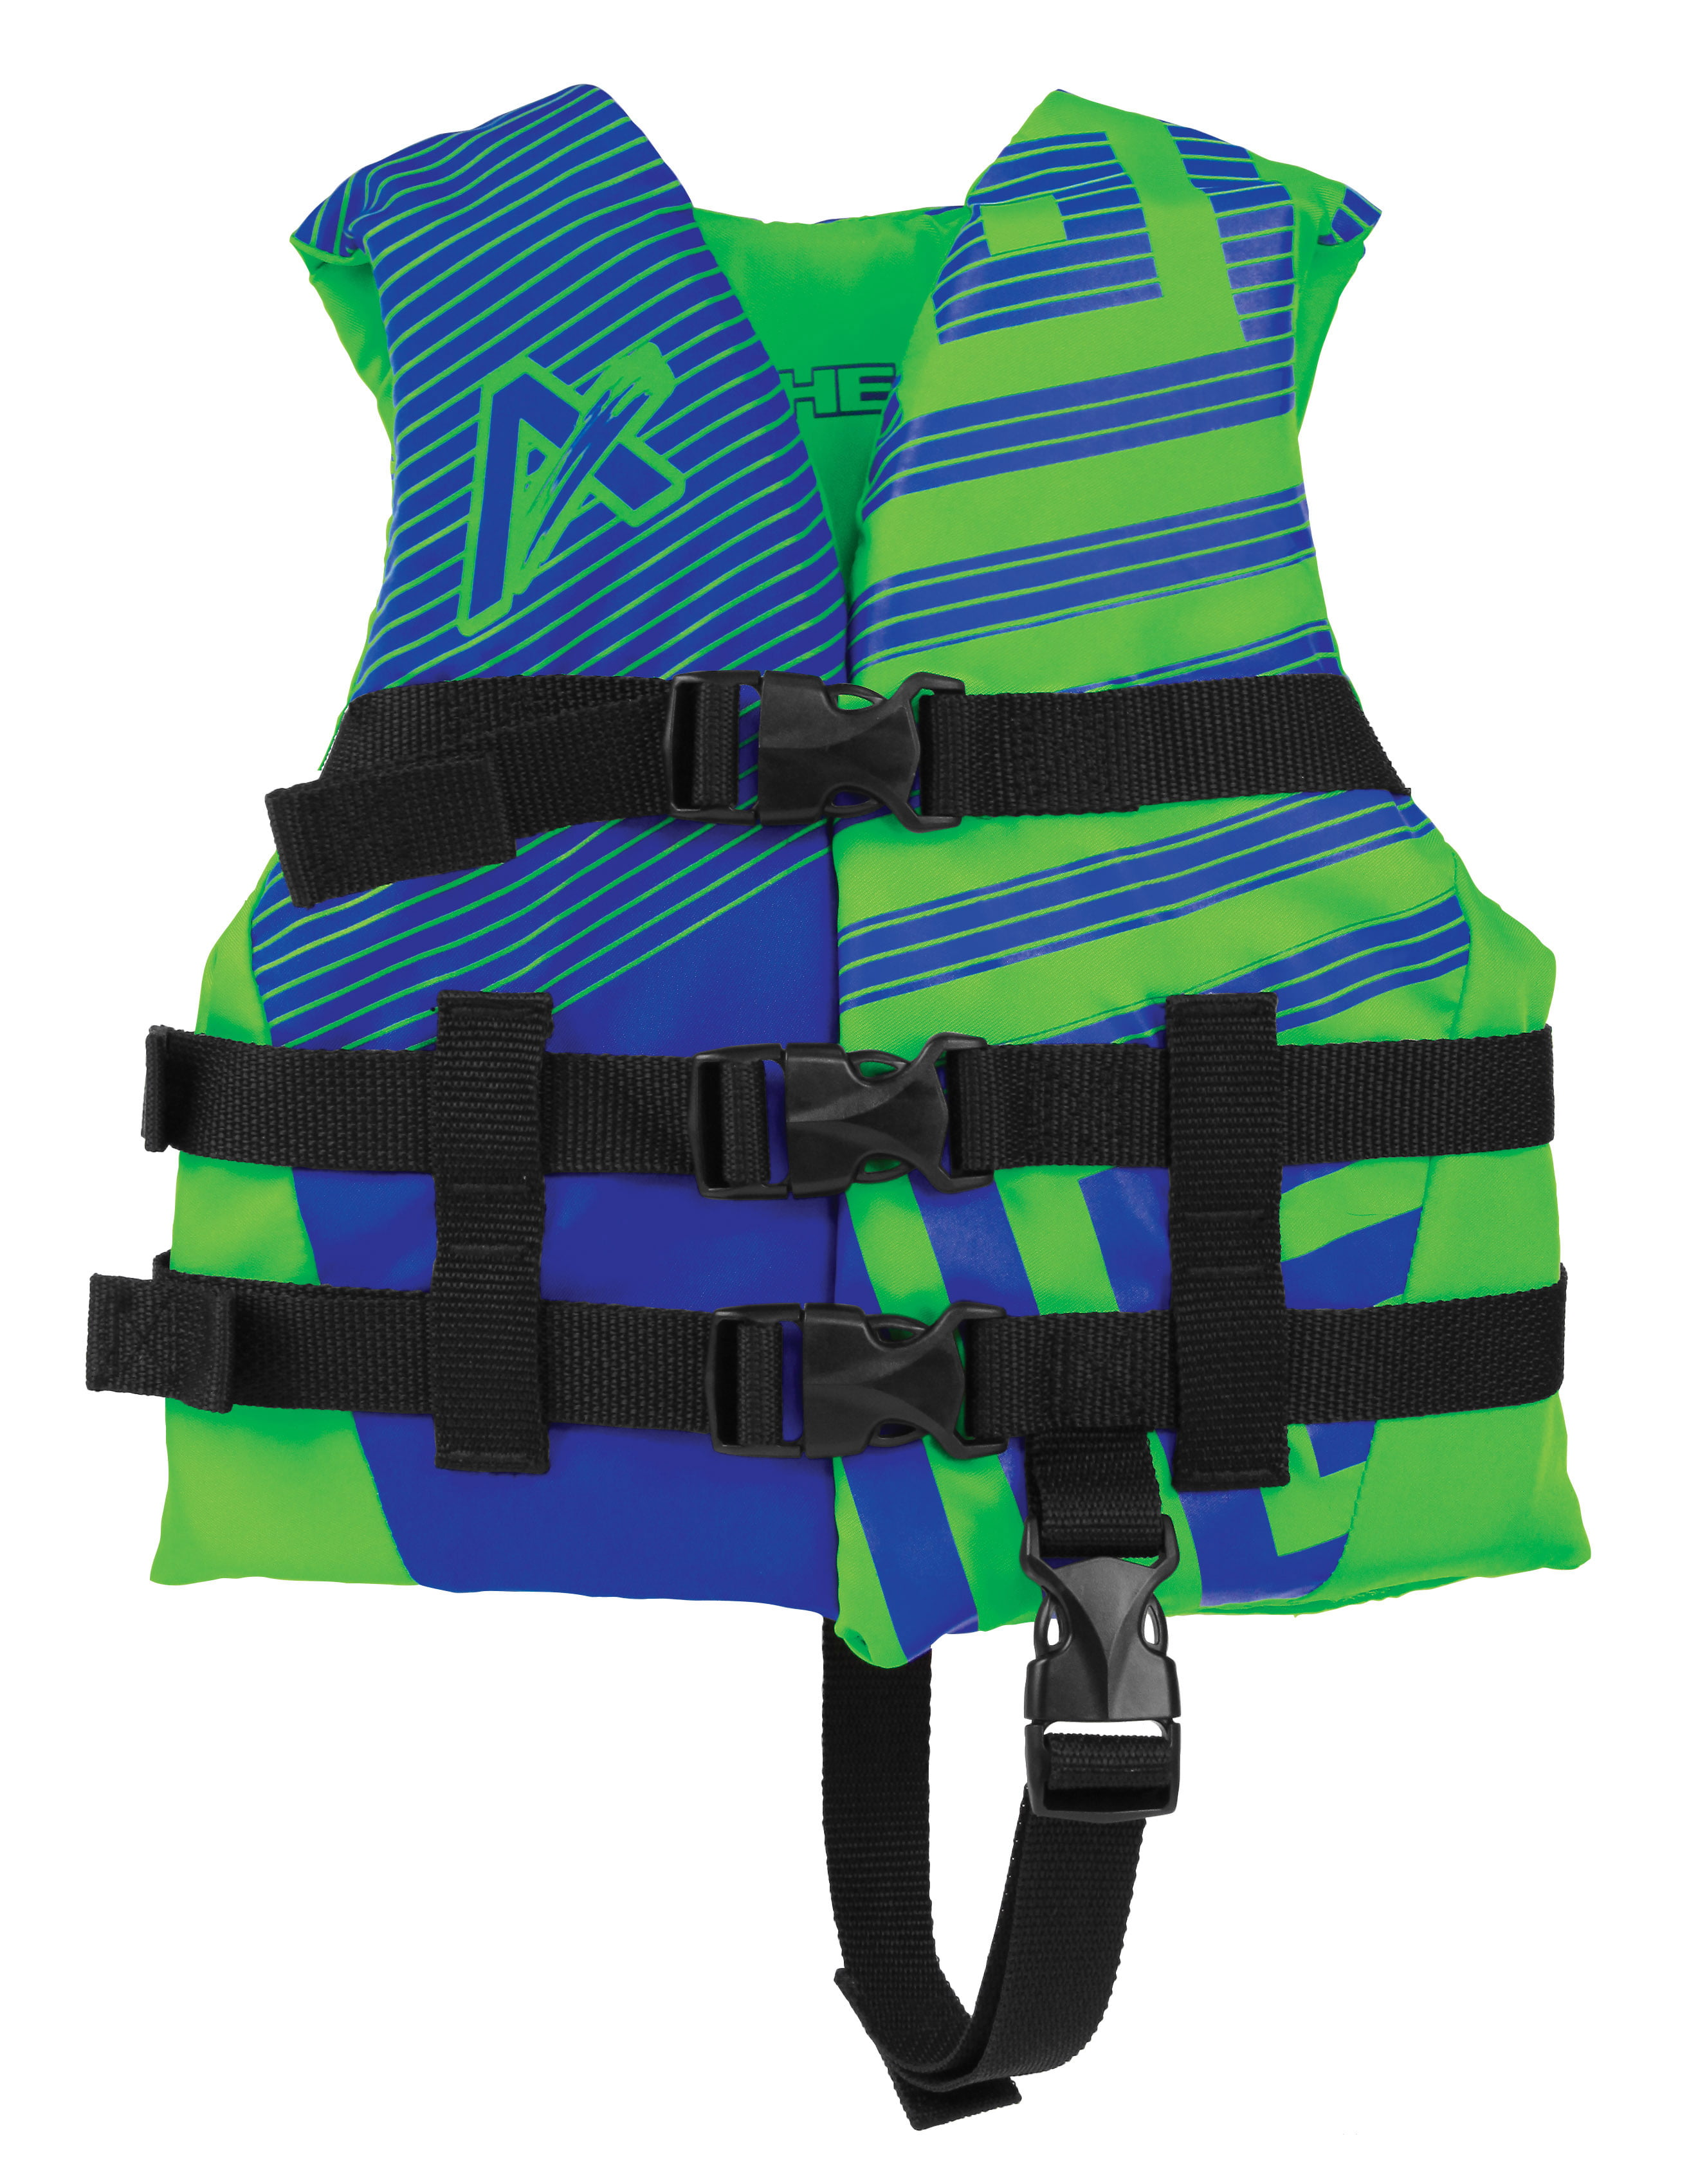 TREND Life Vest, Children, Girls by AIRHEAD SPORTS GROUP